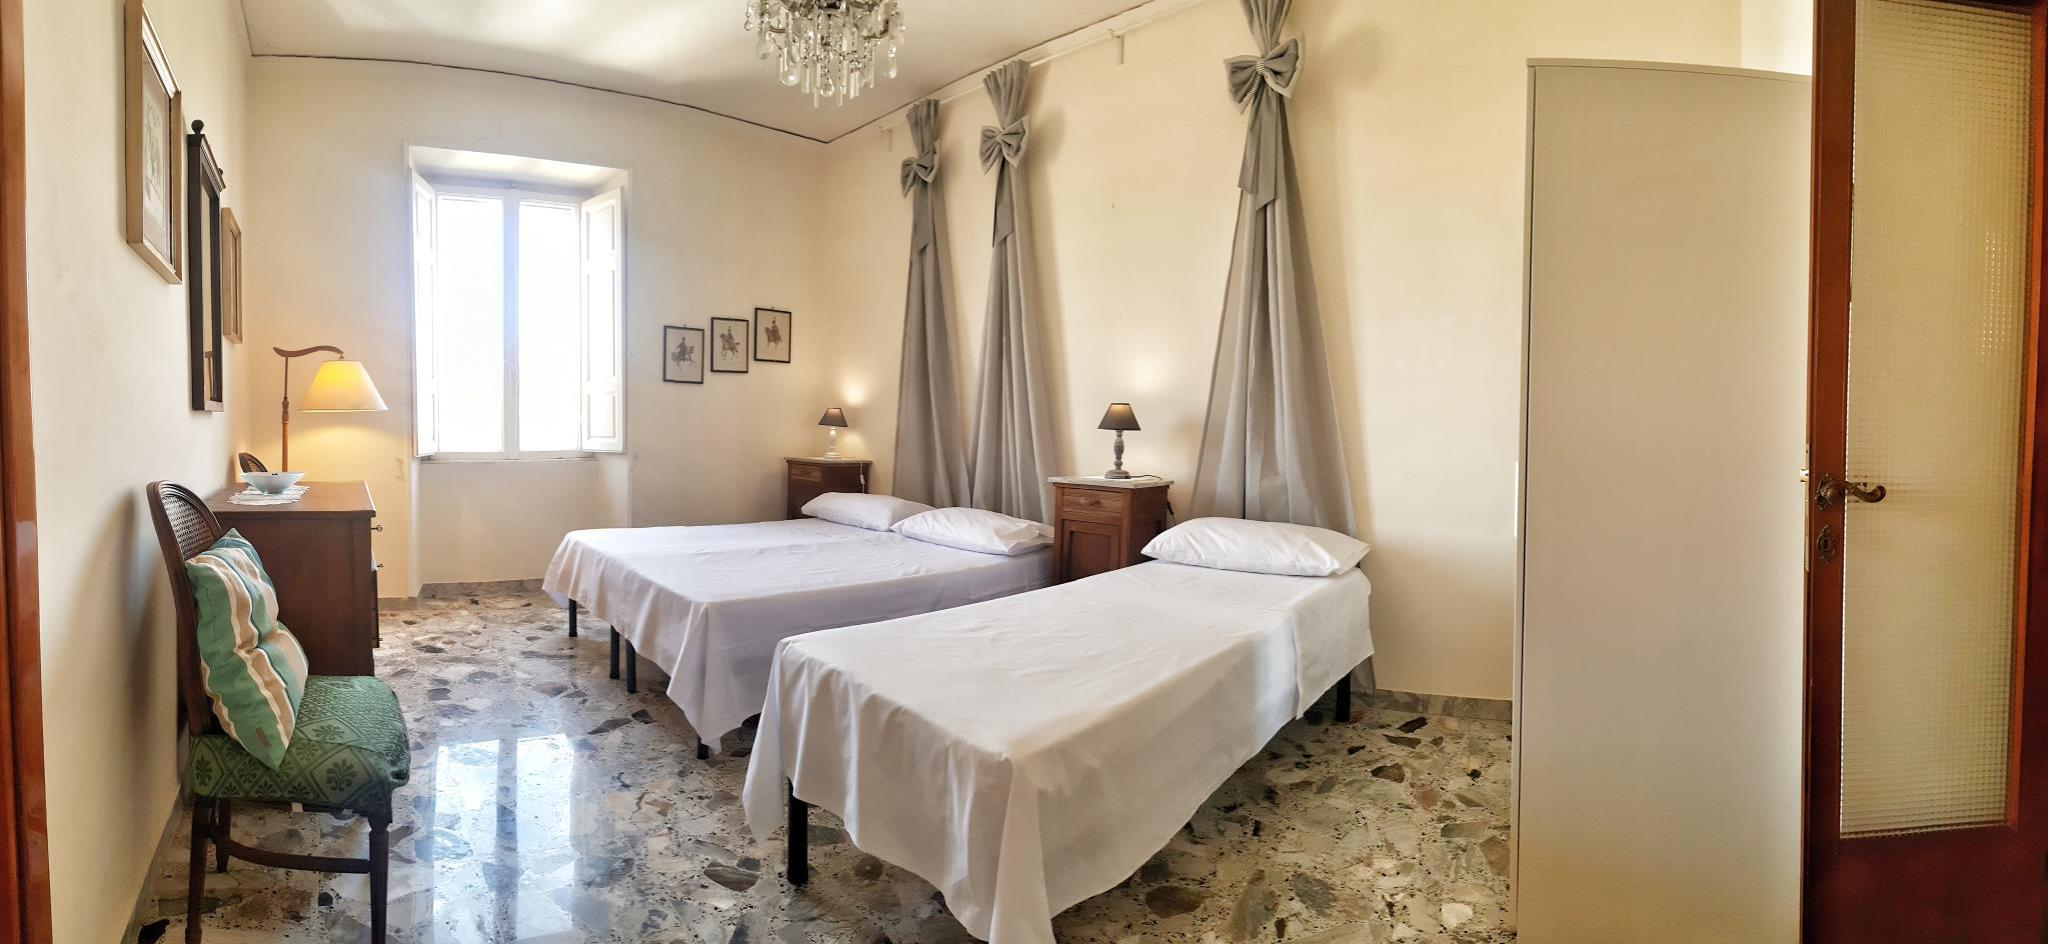 FINEST EMPEROR'S APARTMENT IN THE HEART OF ROME